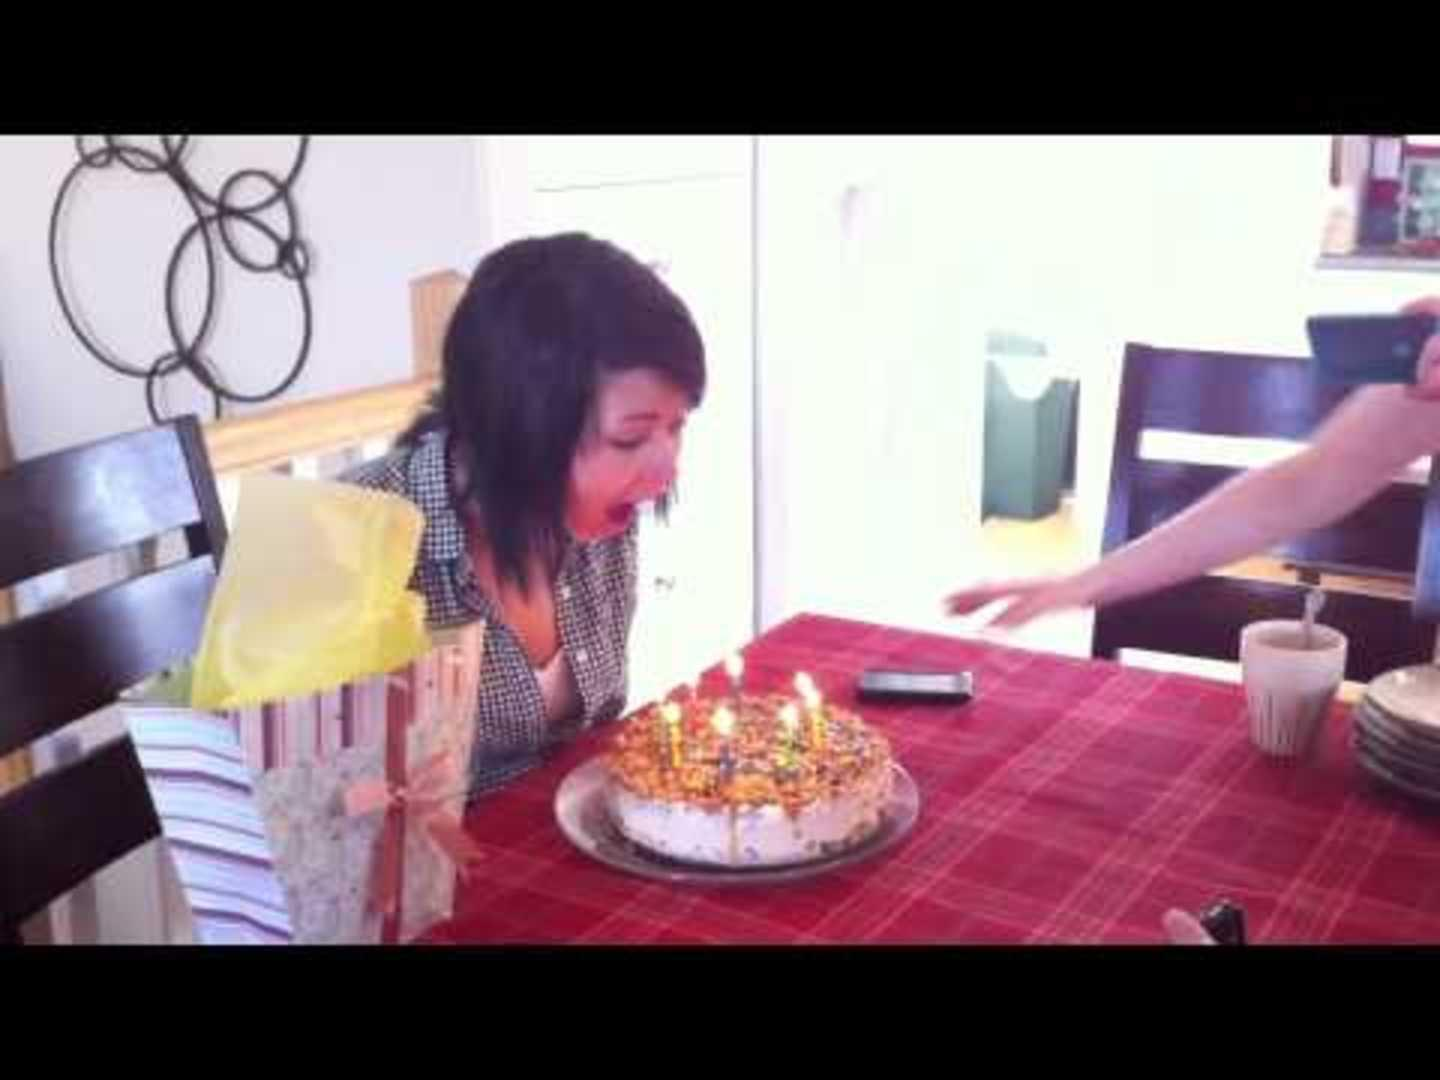 Girls Hair Catches On Fire While Blowing Out Candles